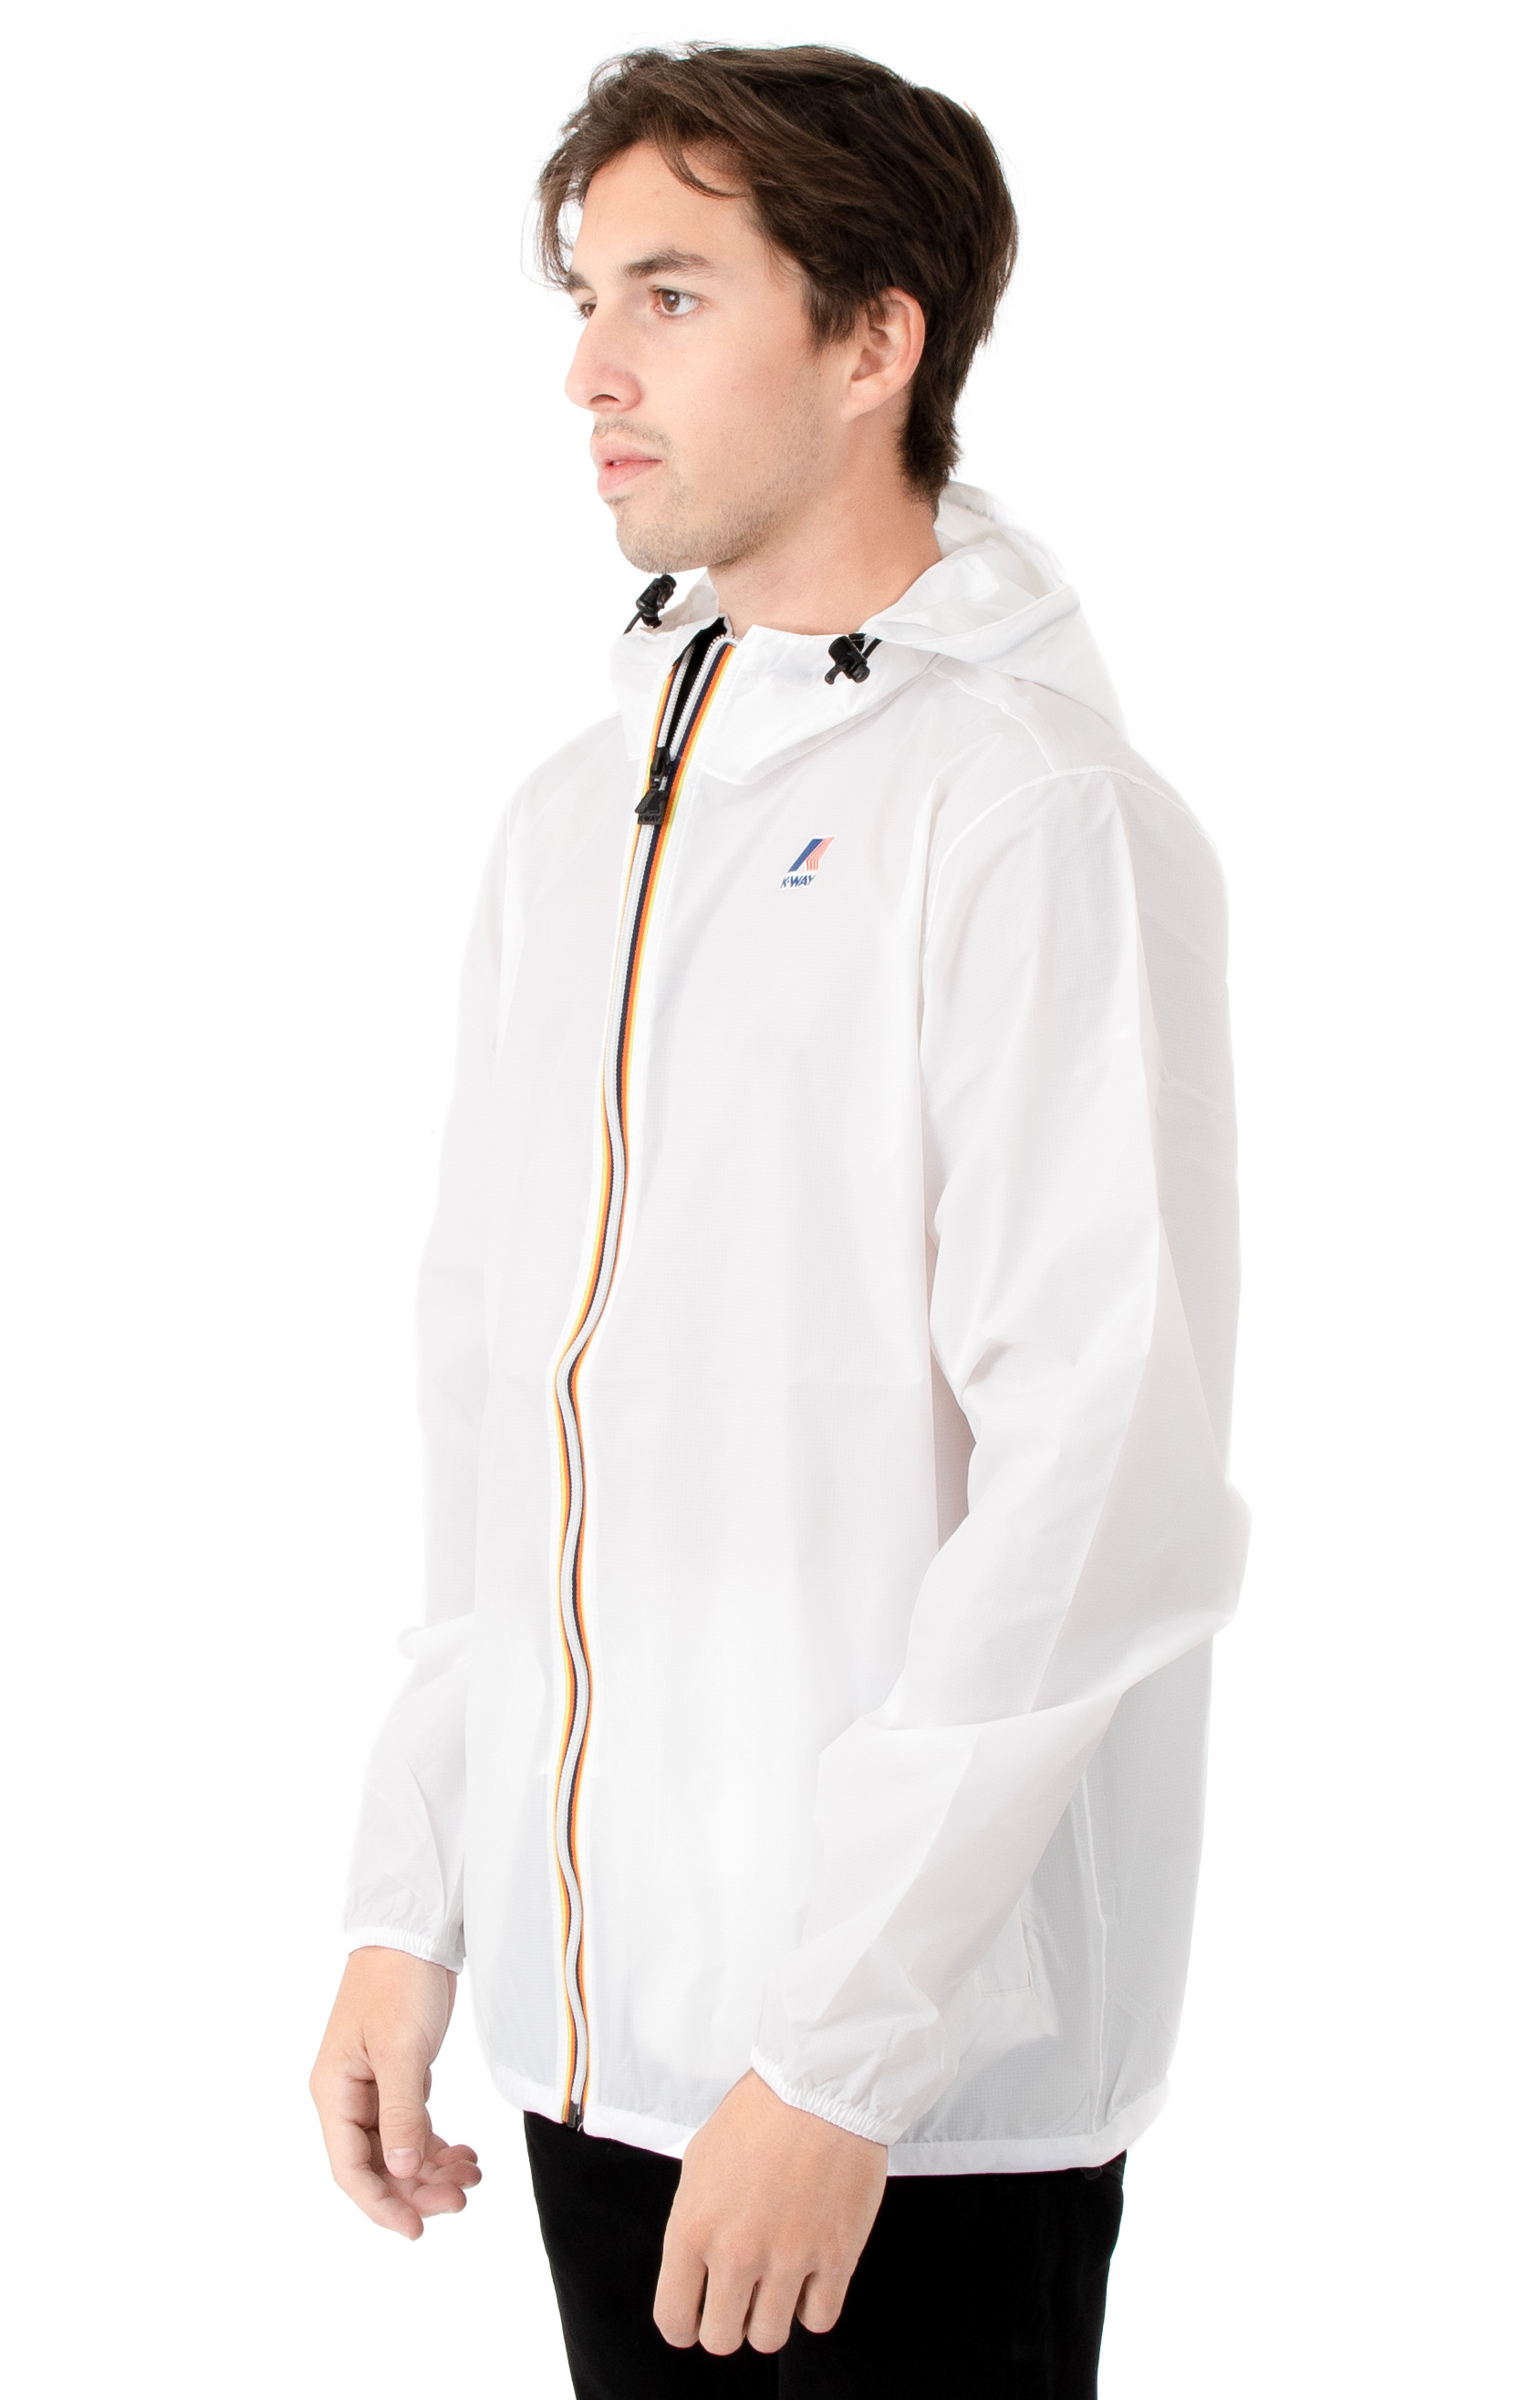 Le Vrai 3.0 Claude Jacket - White  2